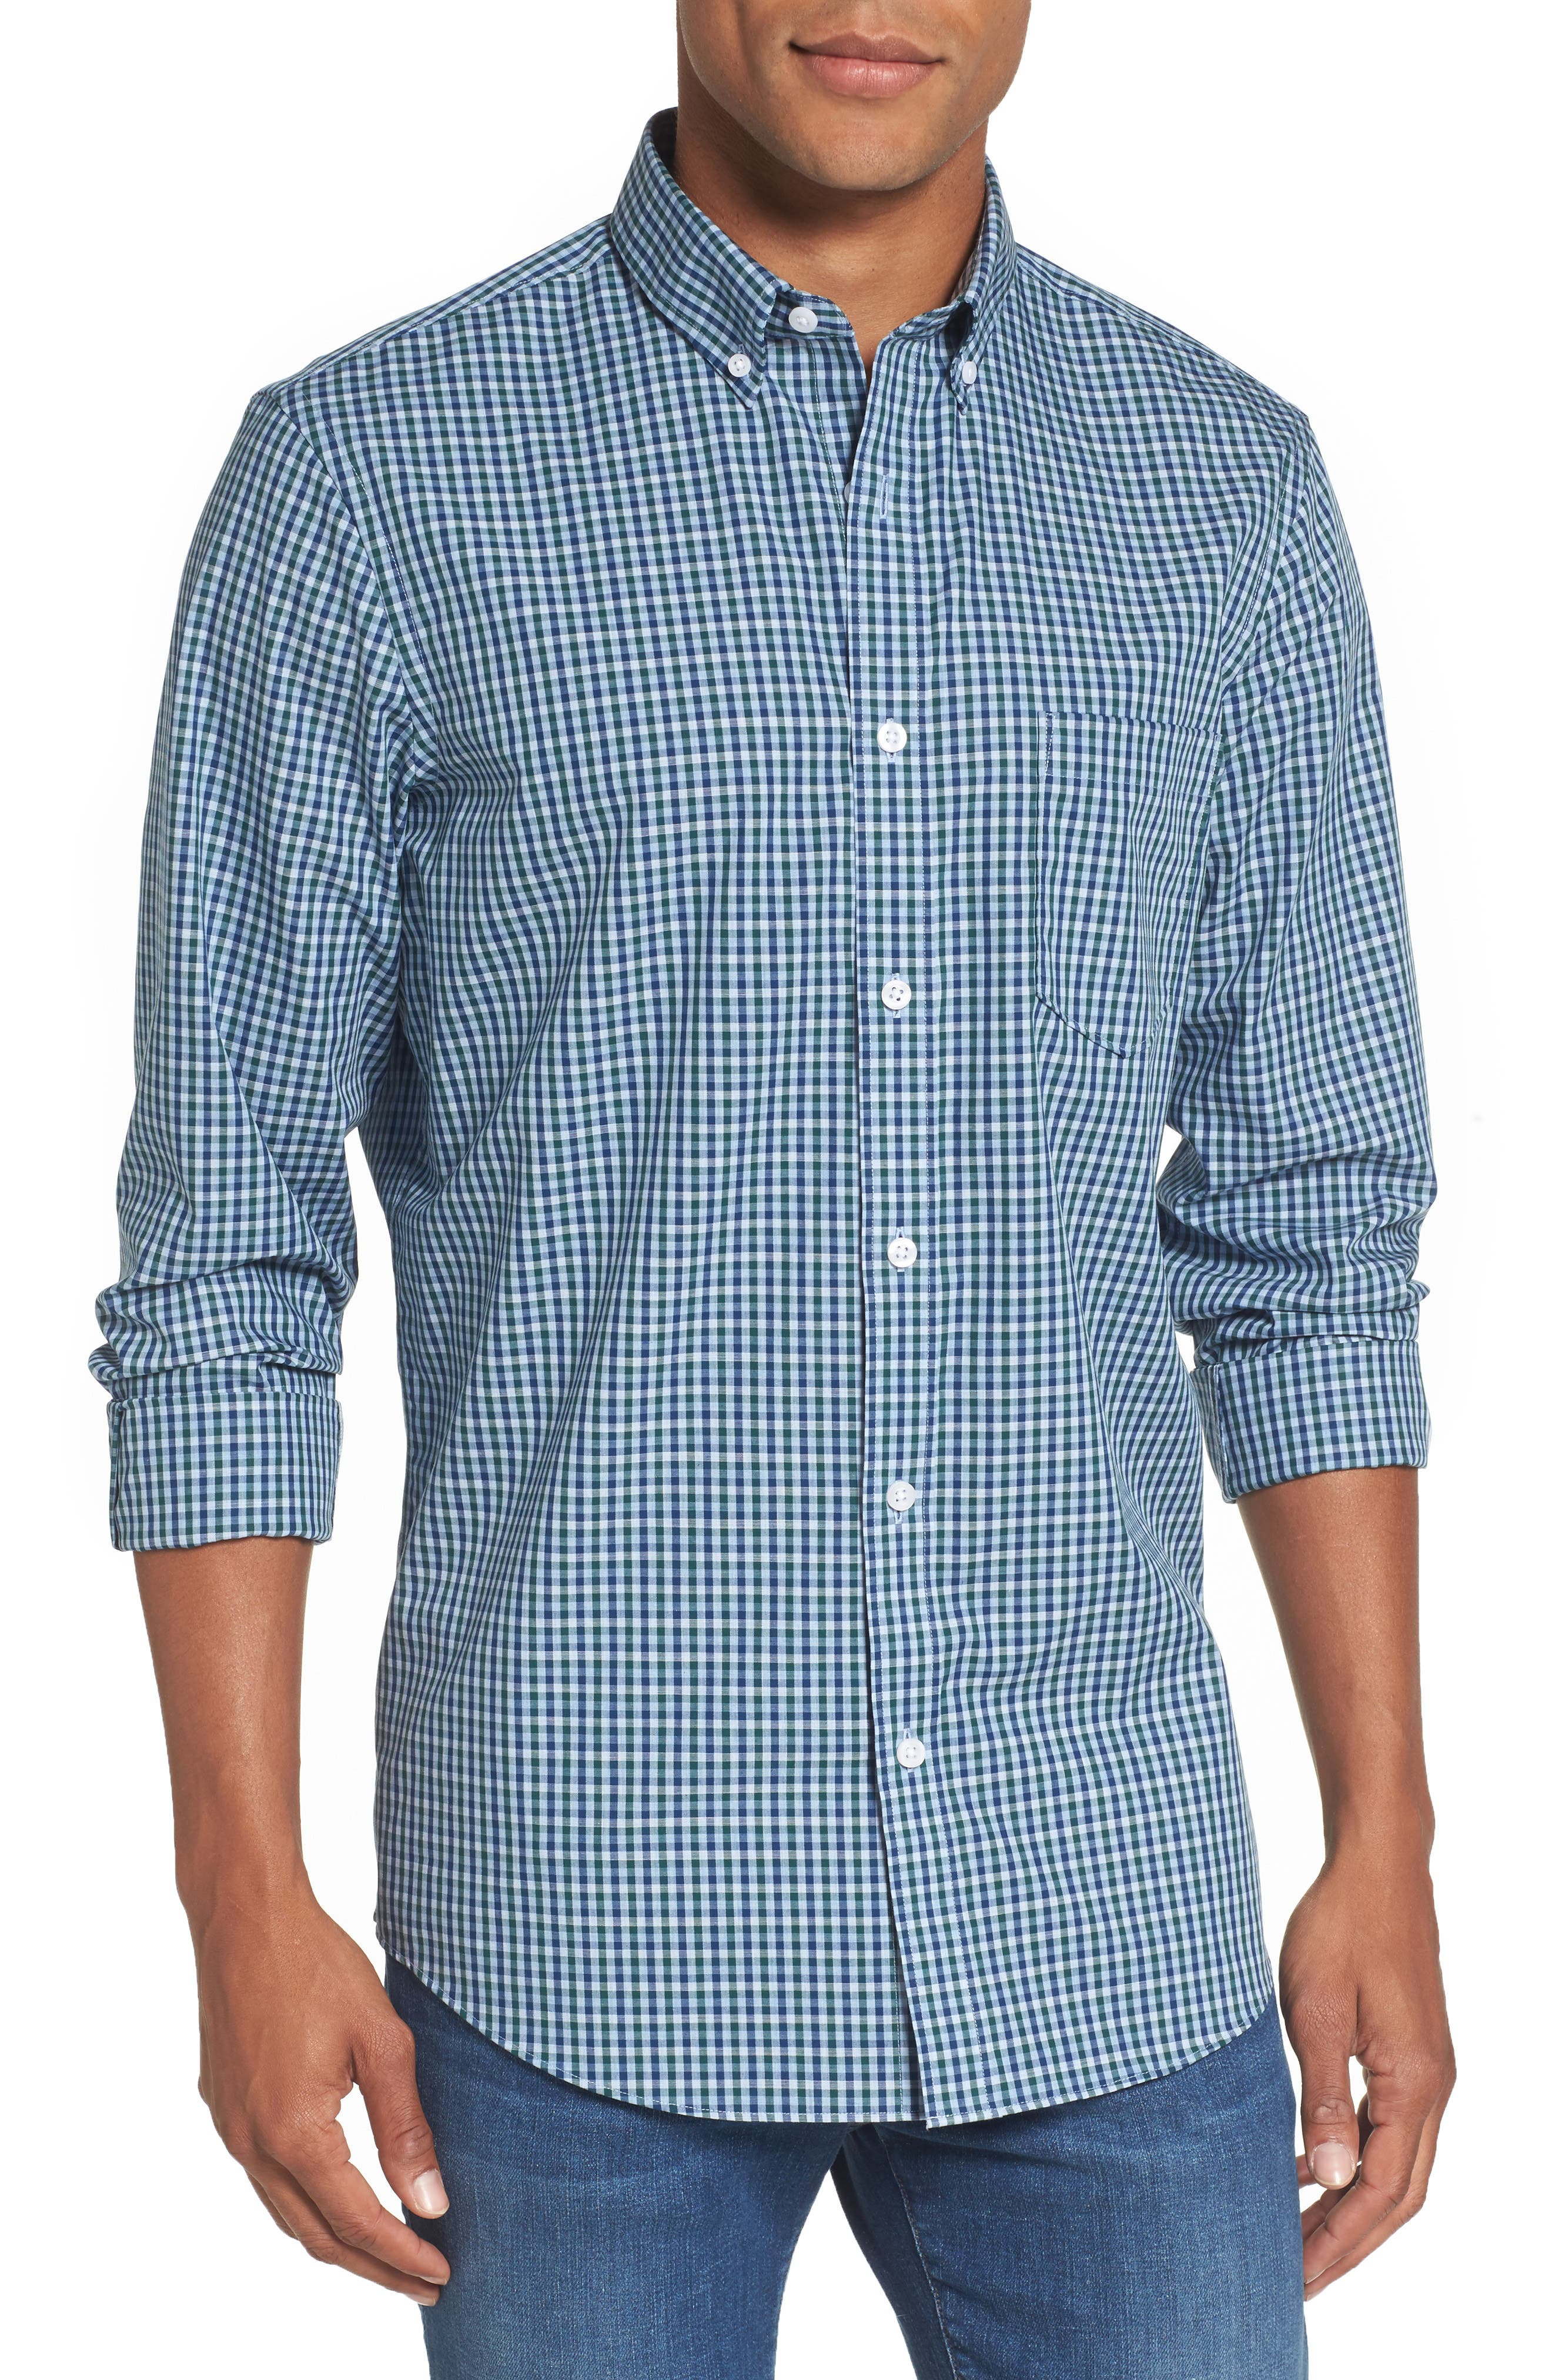 Nordstrom Men's Shop Regular Fit Non-Iron Mini Check Sport Shirt (Regular & Tall)